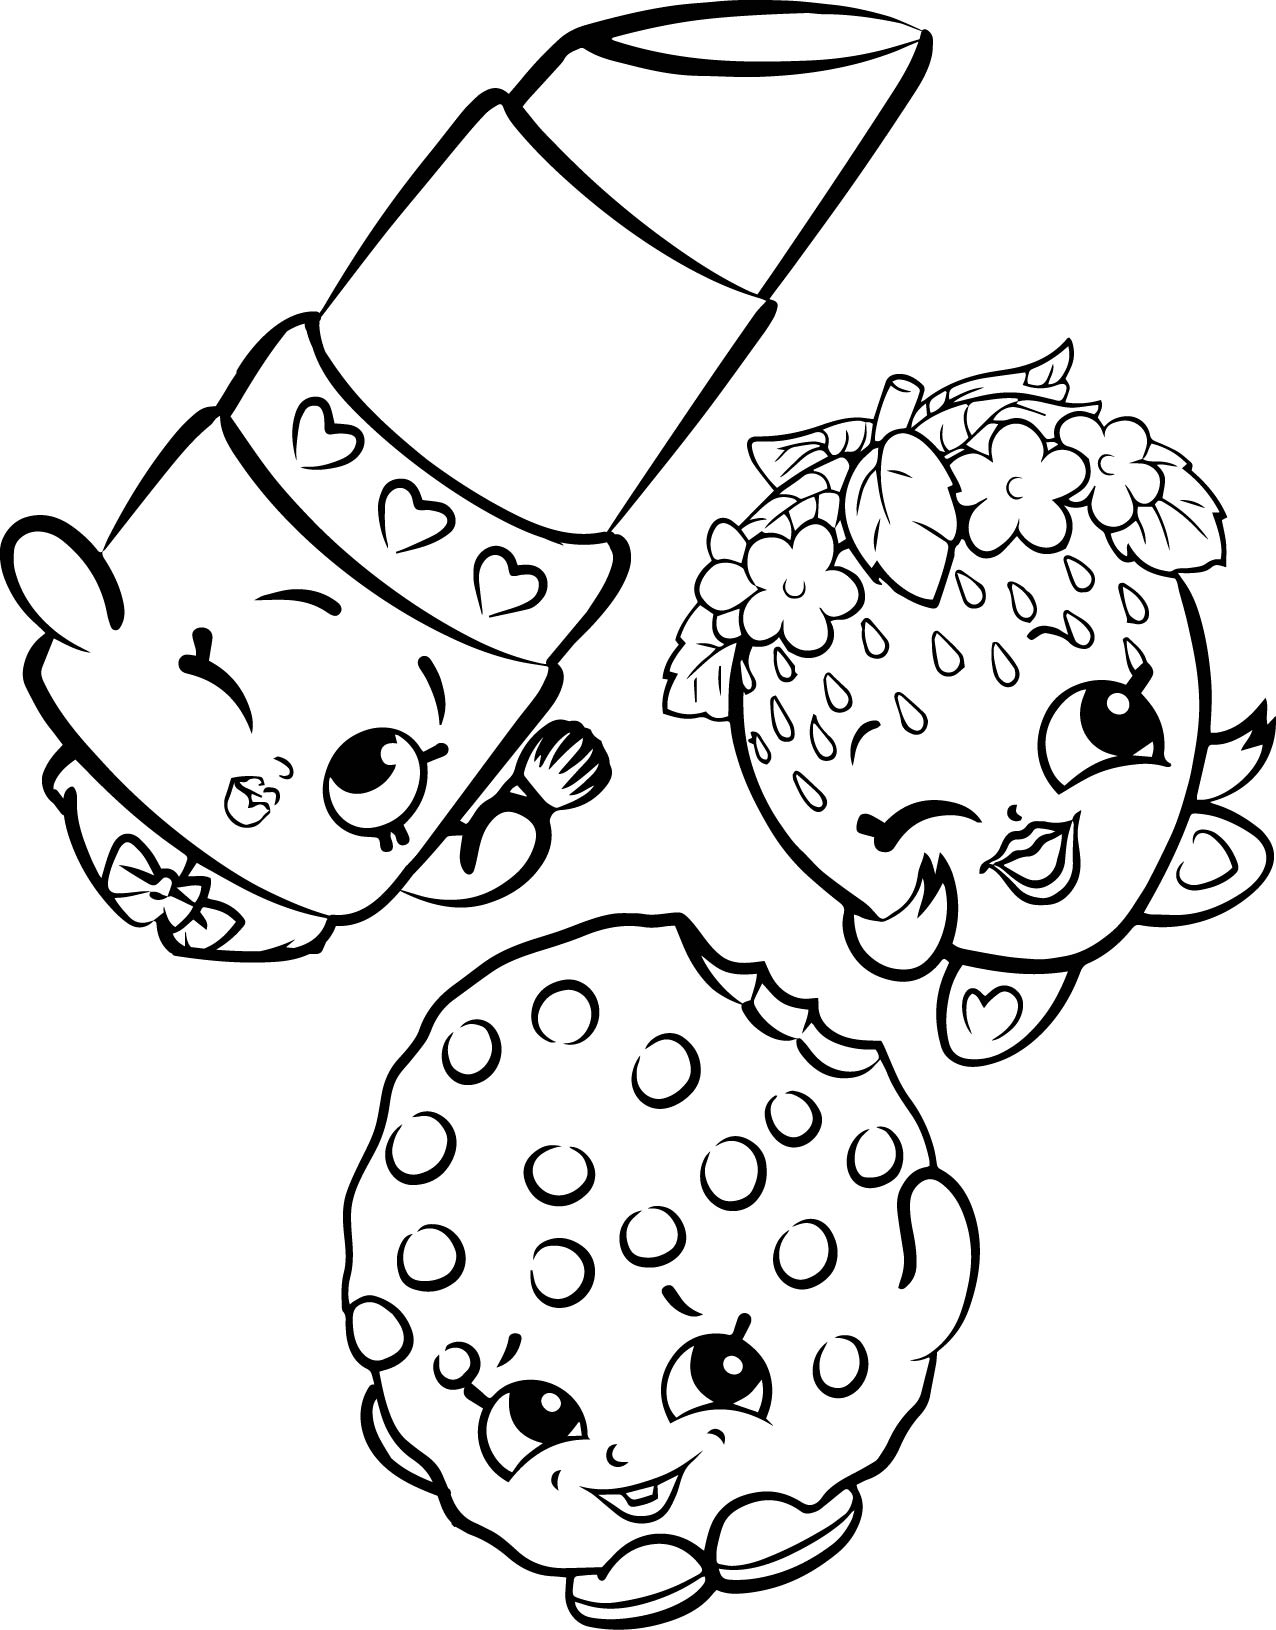 Free Shopkins Printables Coloring Pages Download 4 Shopkins Printable Of Shopkins Coloring Pages 45 Download